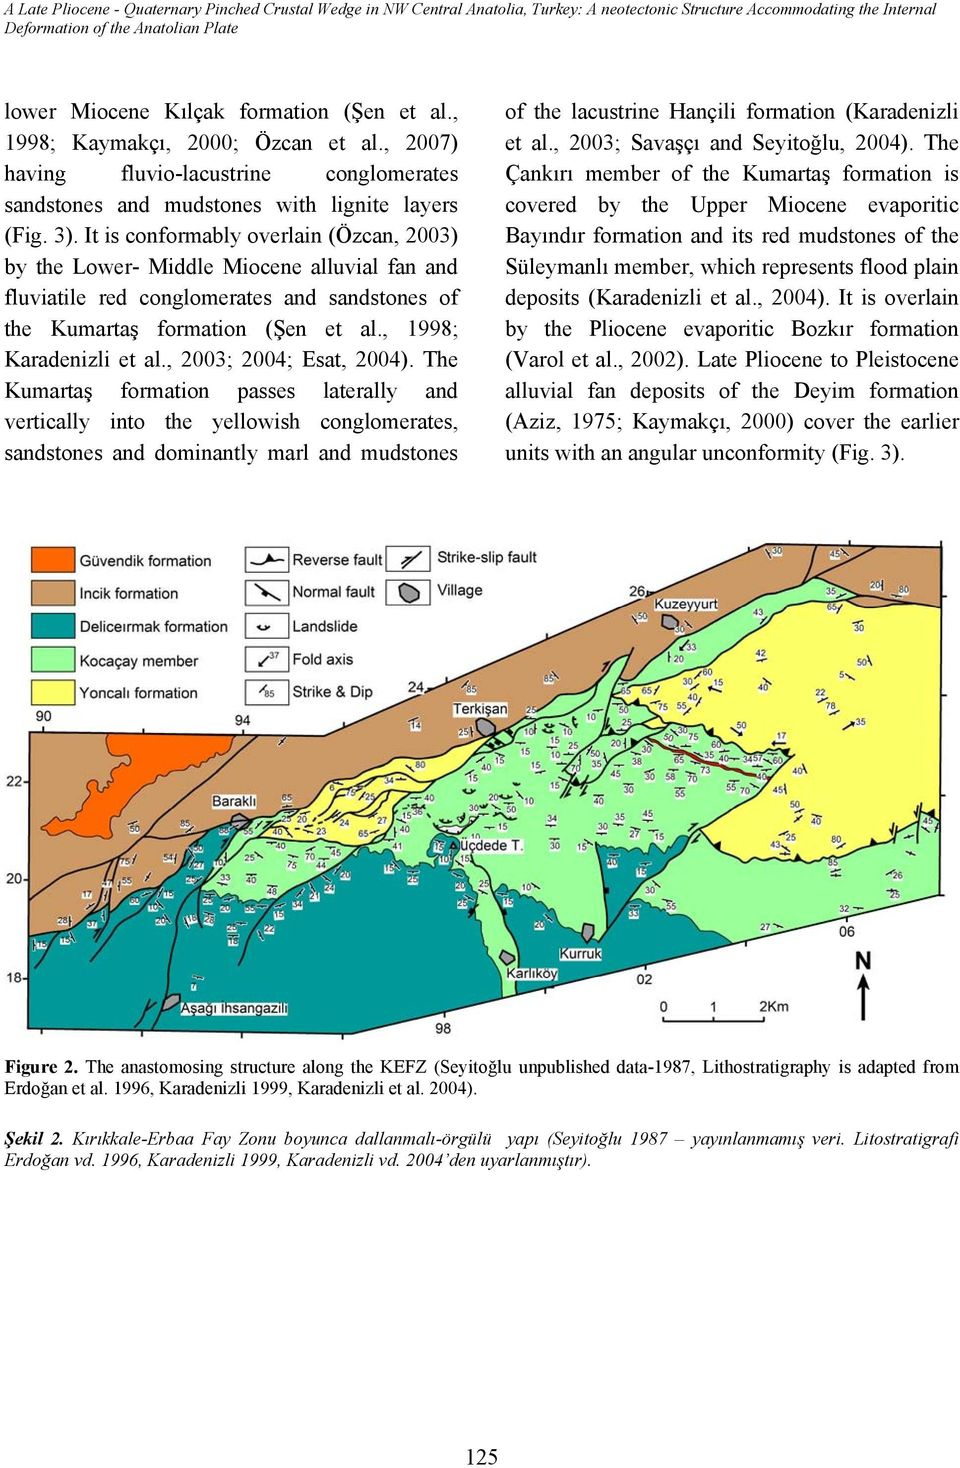 It is conformably overlain (Özcan, 2003) by the Lower- Middle Miocene alluvial fan and fluviatile red conglomerates and sandstones of the Kumartaş formation (Şen et al., 1998; Karadenizli et al.